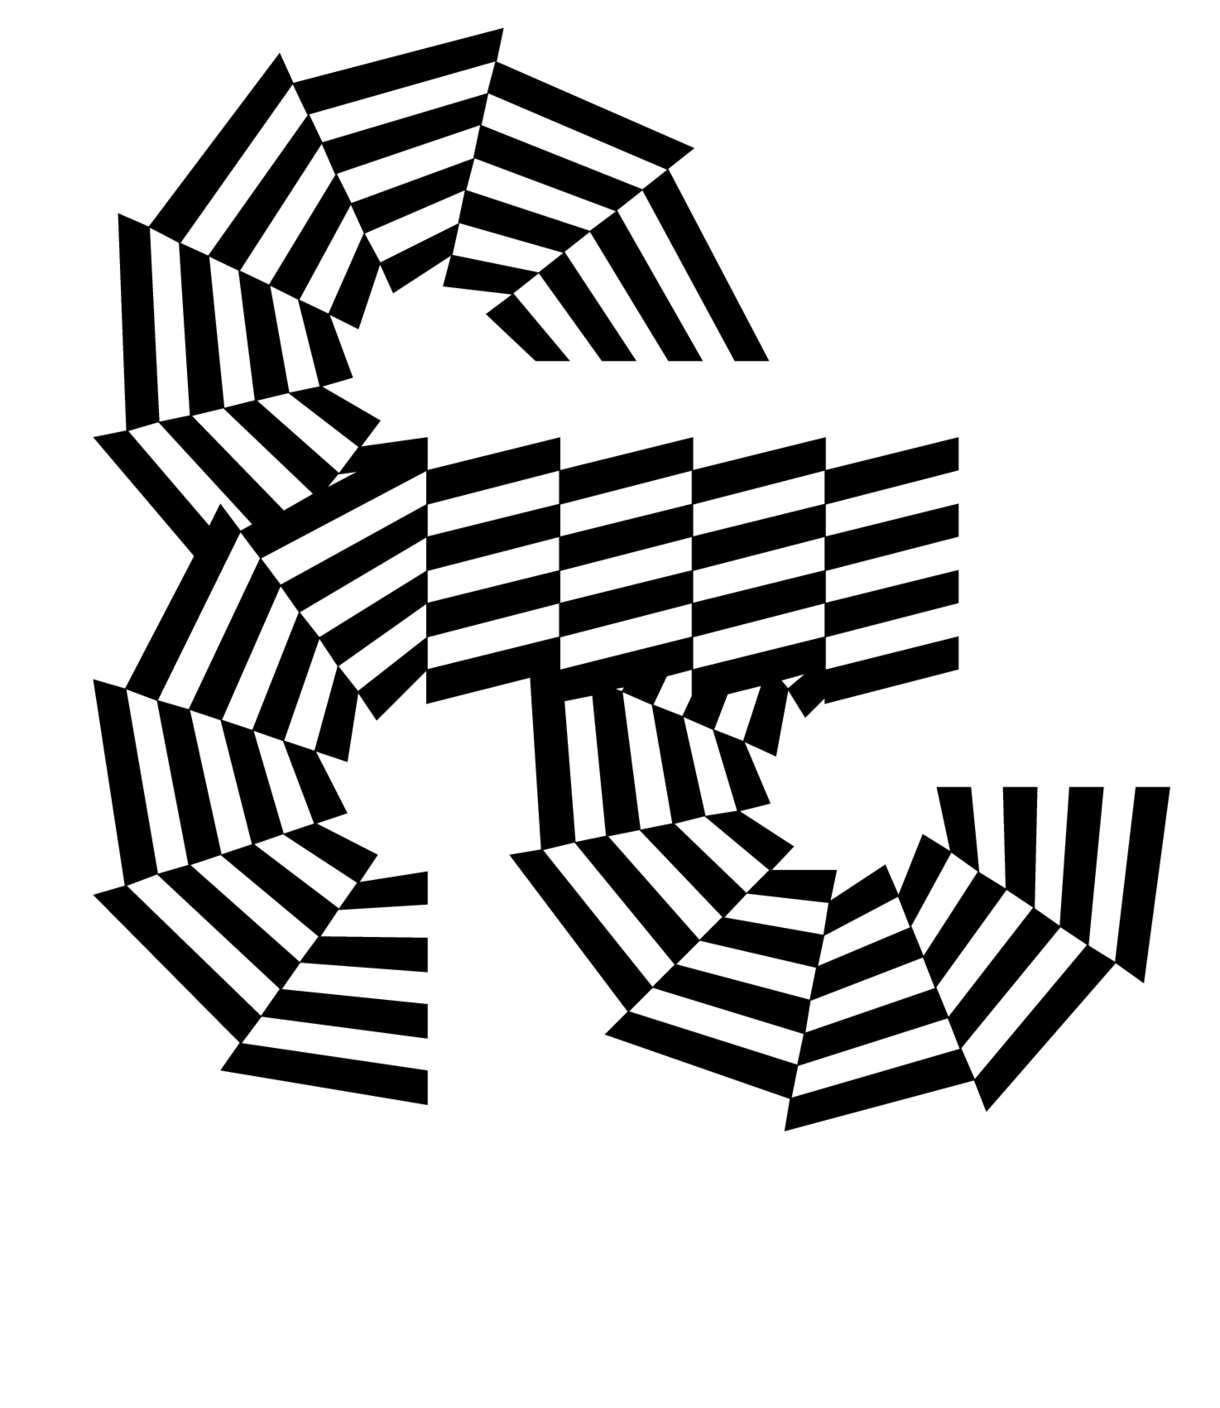 pattern-project-letters-35-1220x1407px